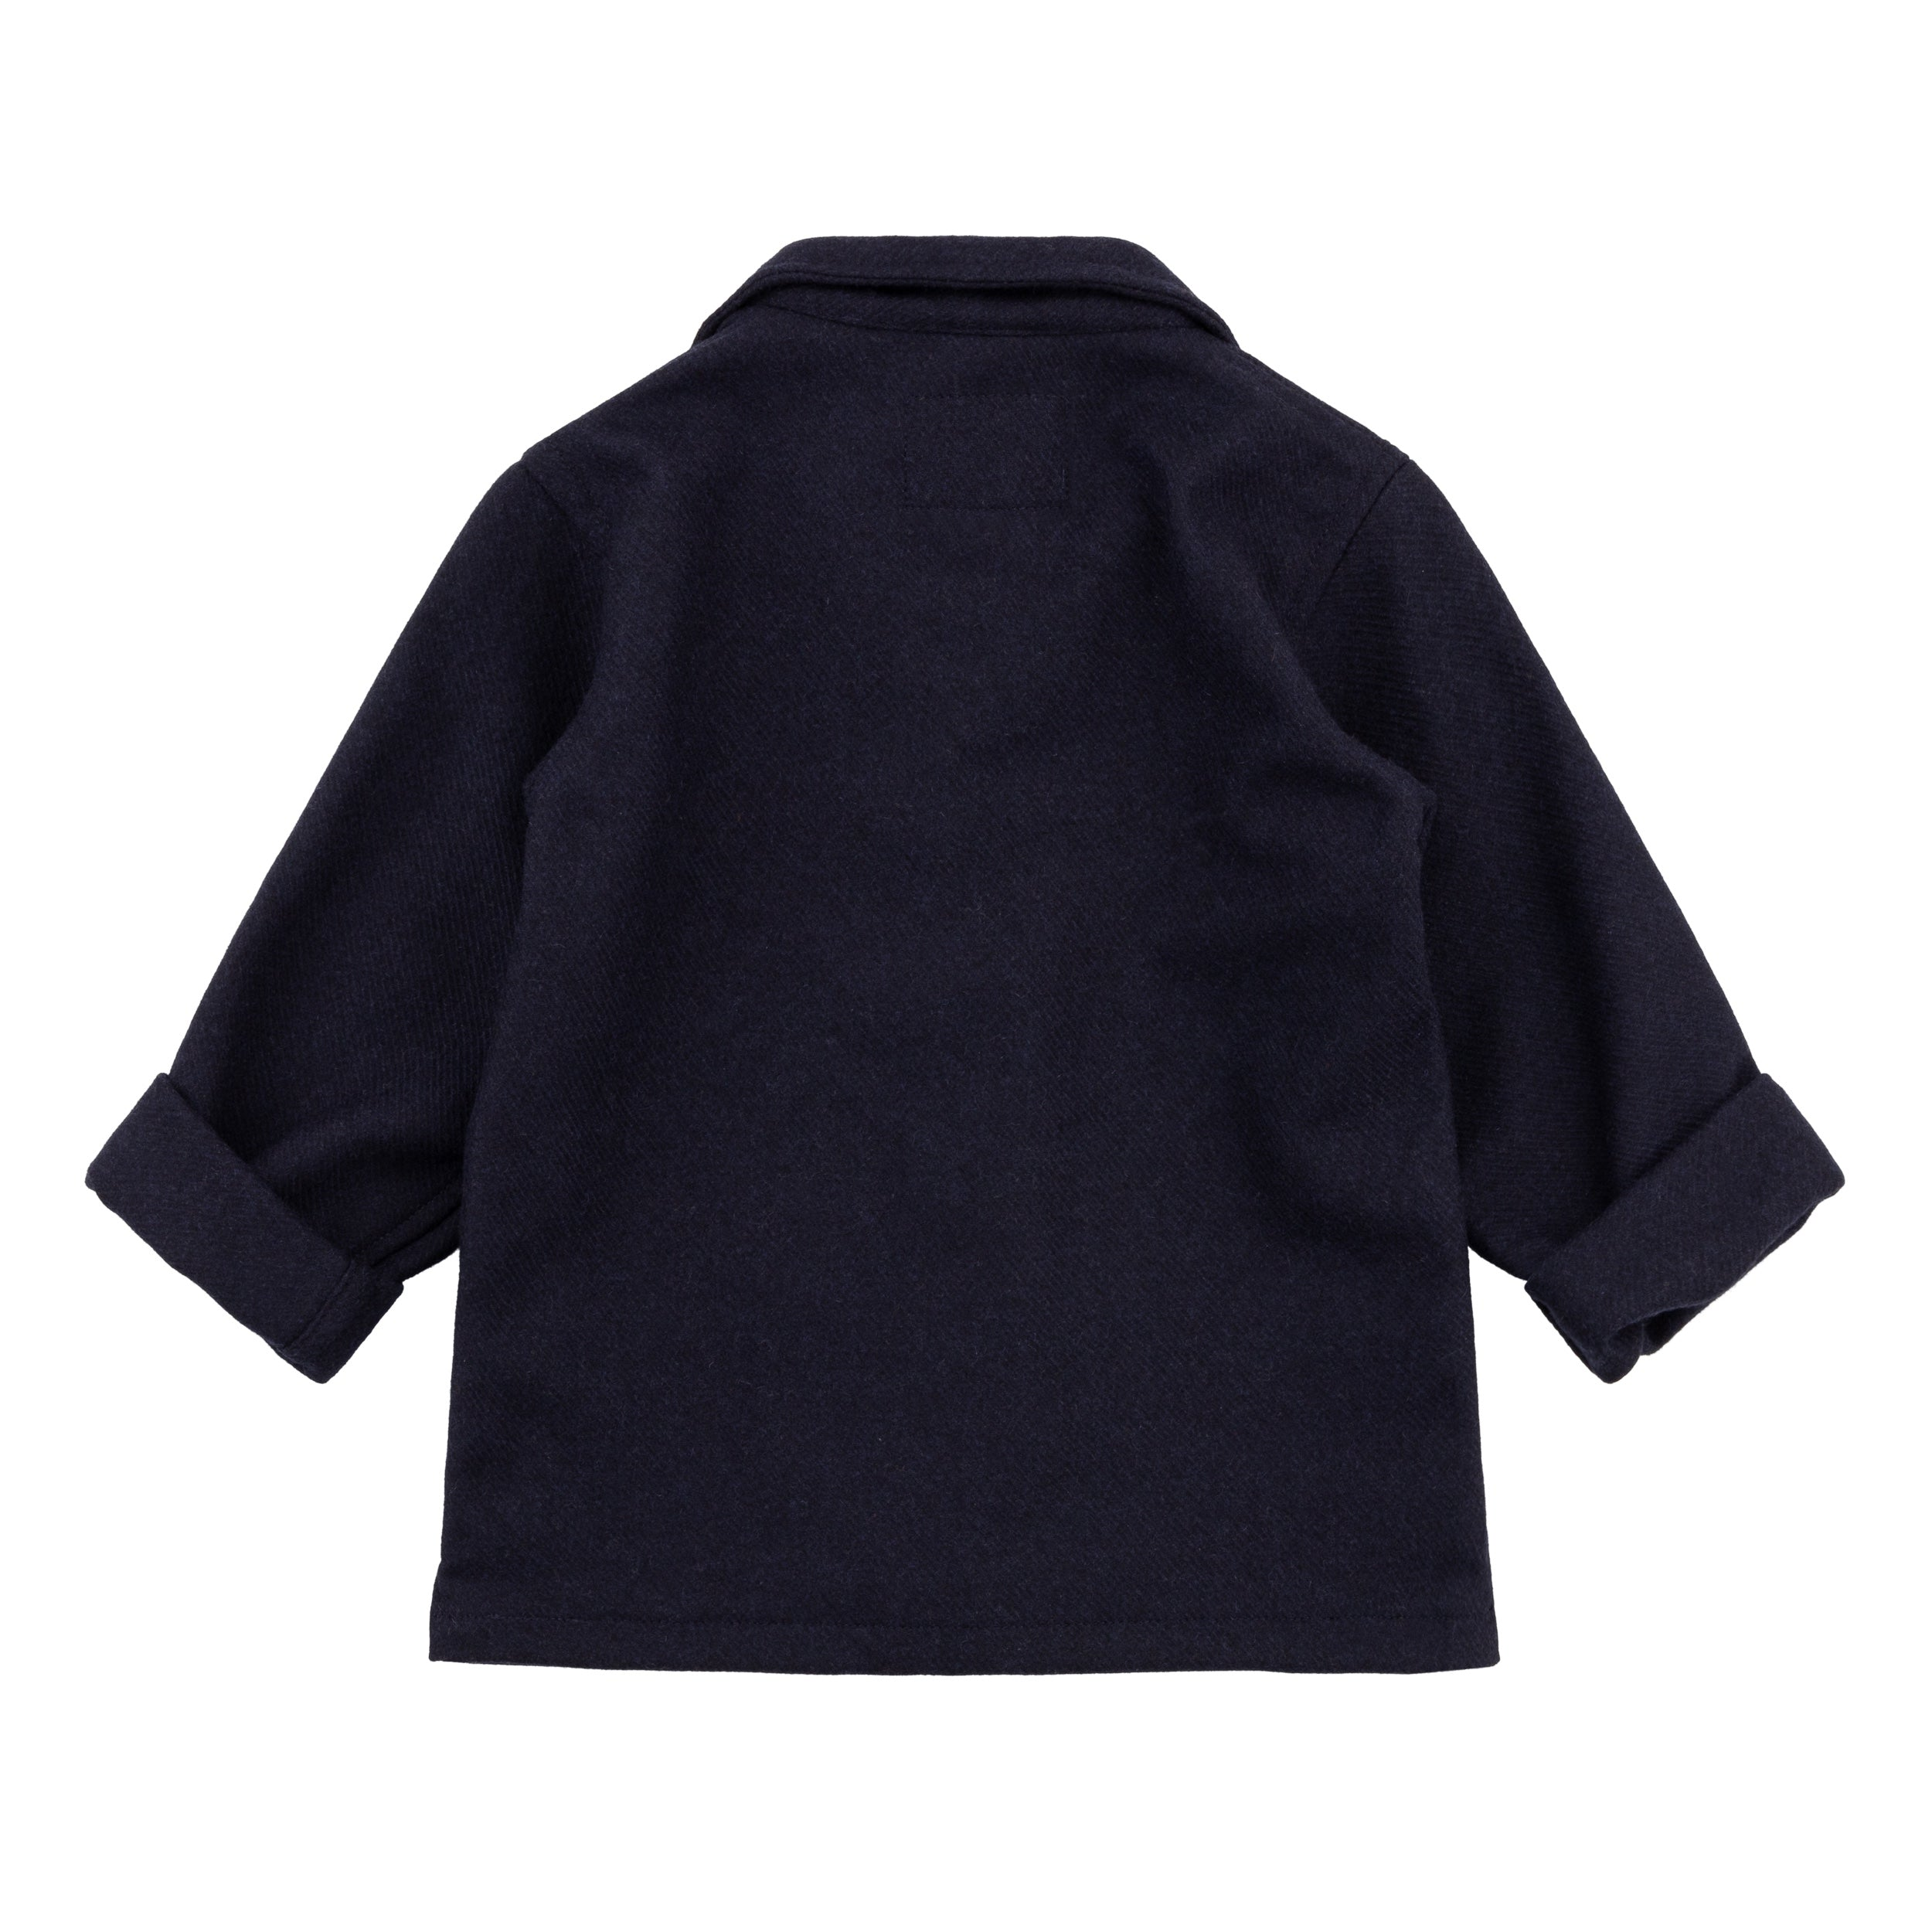 Children's Wool Jacket